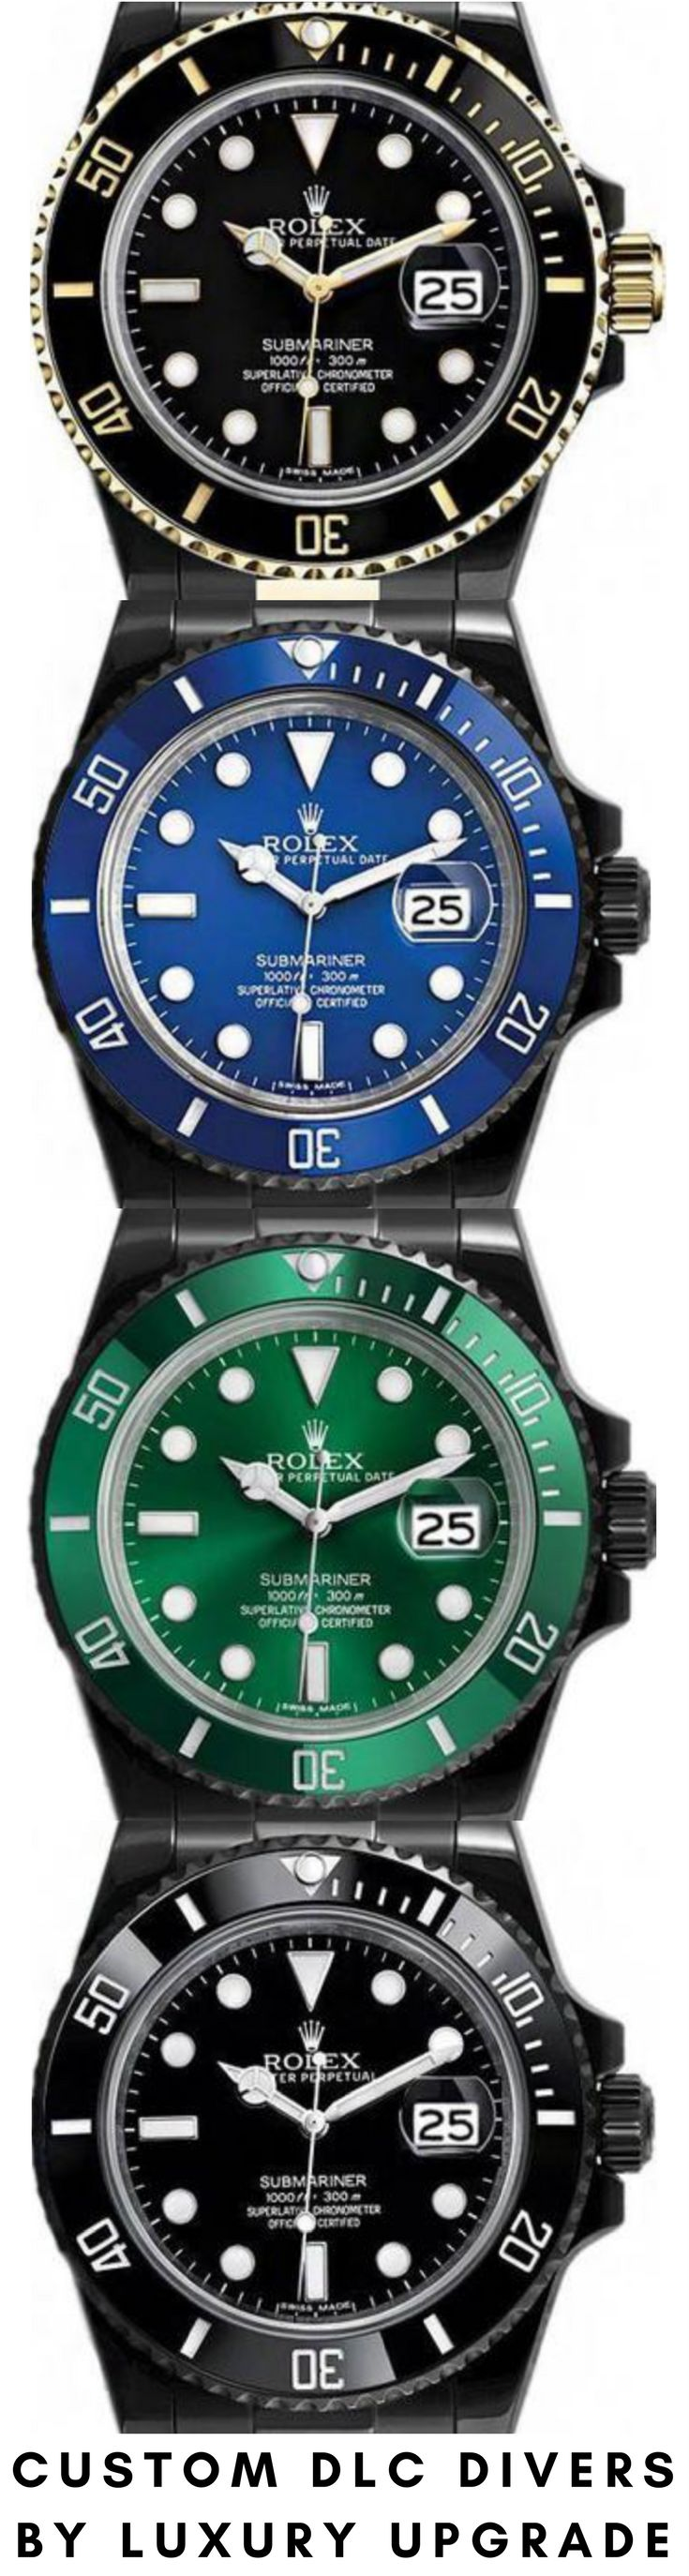 rolex dlc sports pinterest submariner watch luxury on black hirofumiokawa prayer images green dive watches best custom coating